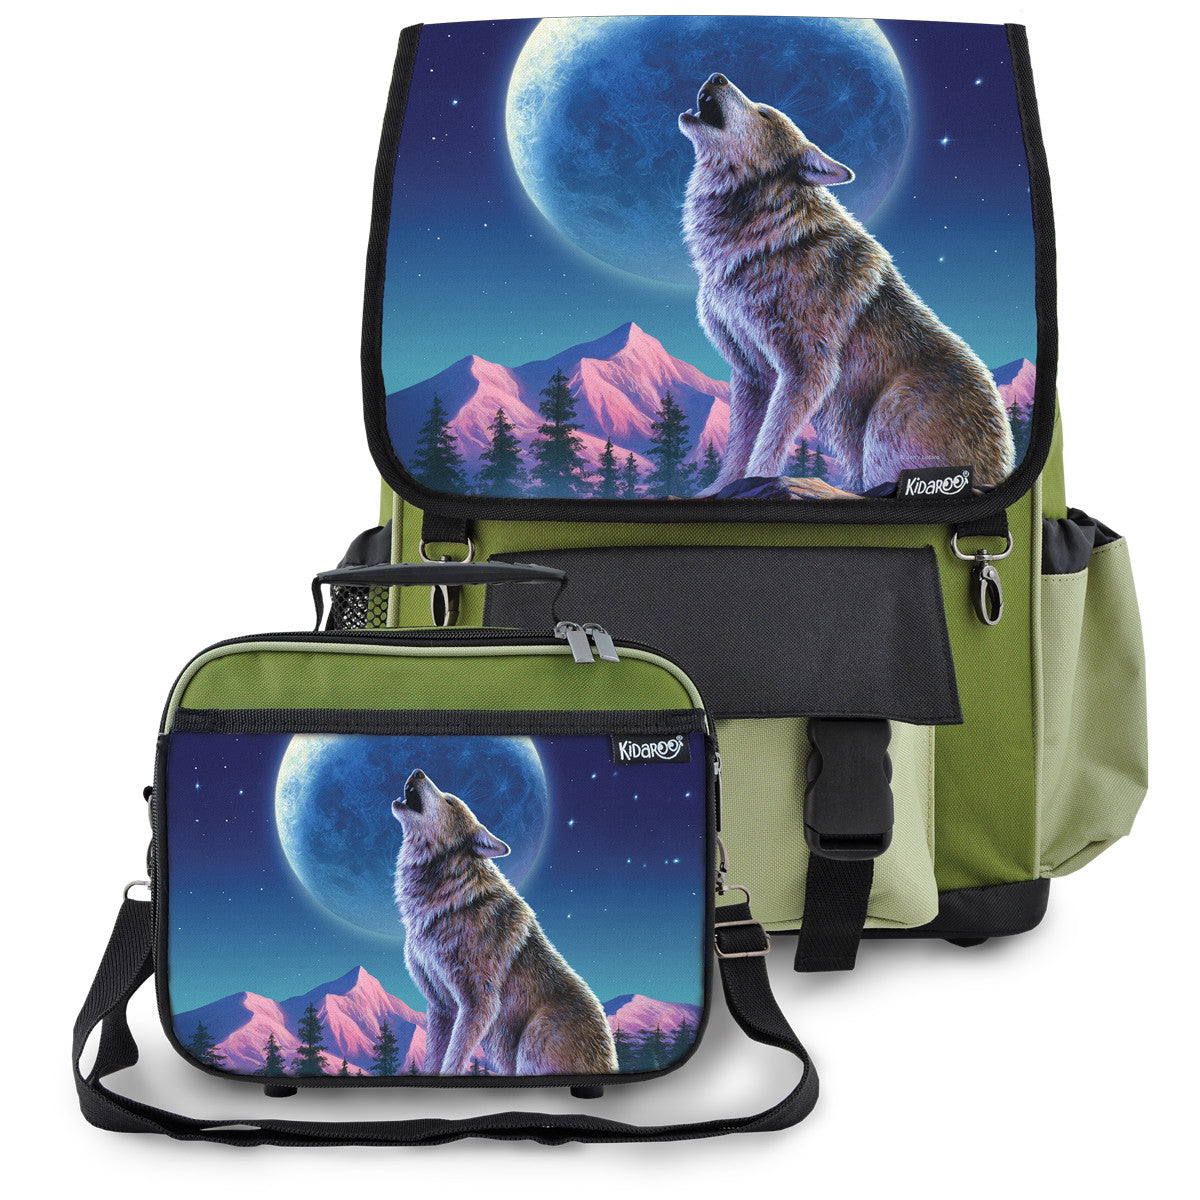 Kidaroo Khaki Green Wolf Moon Howl School Backpack & Lunchbox Set for Boys, Girls, Kids